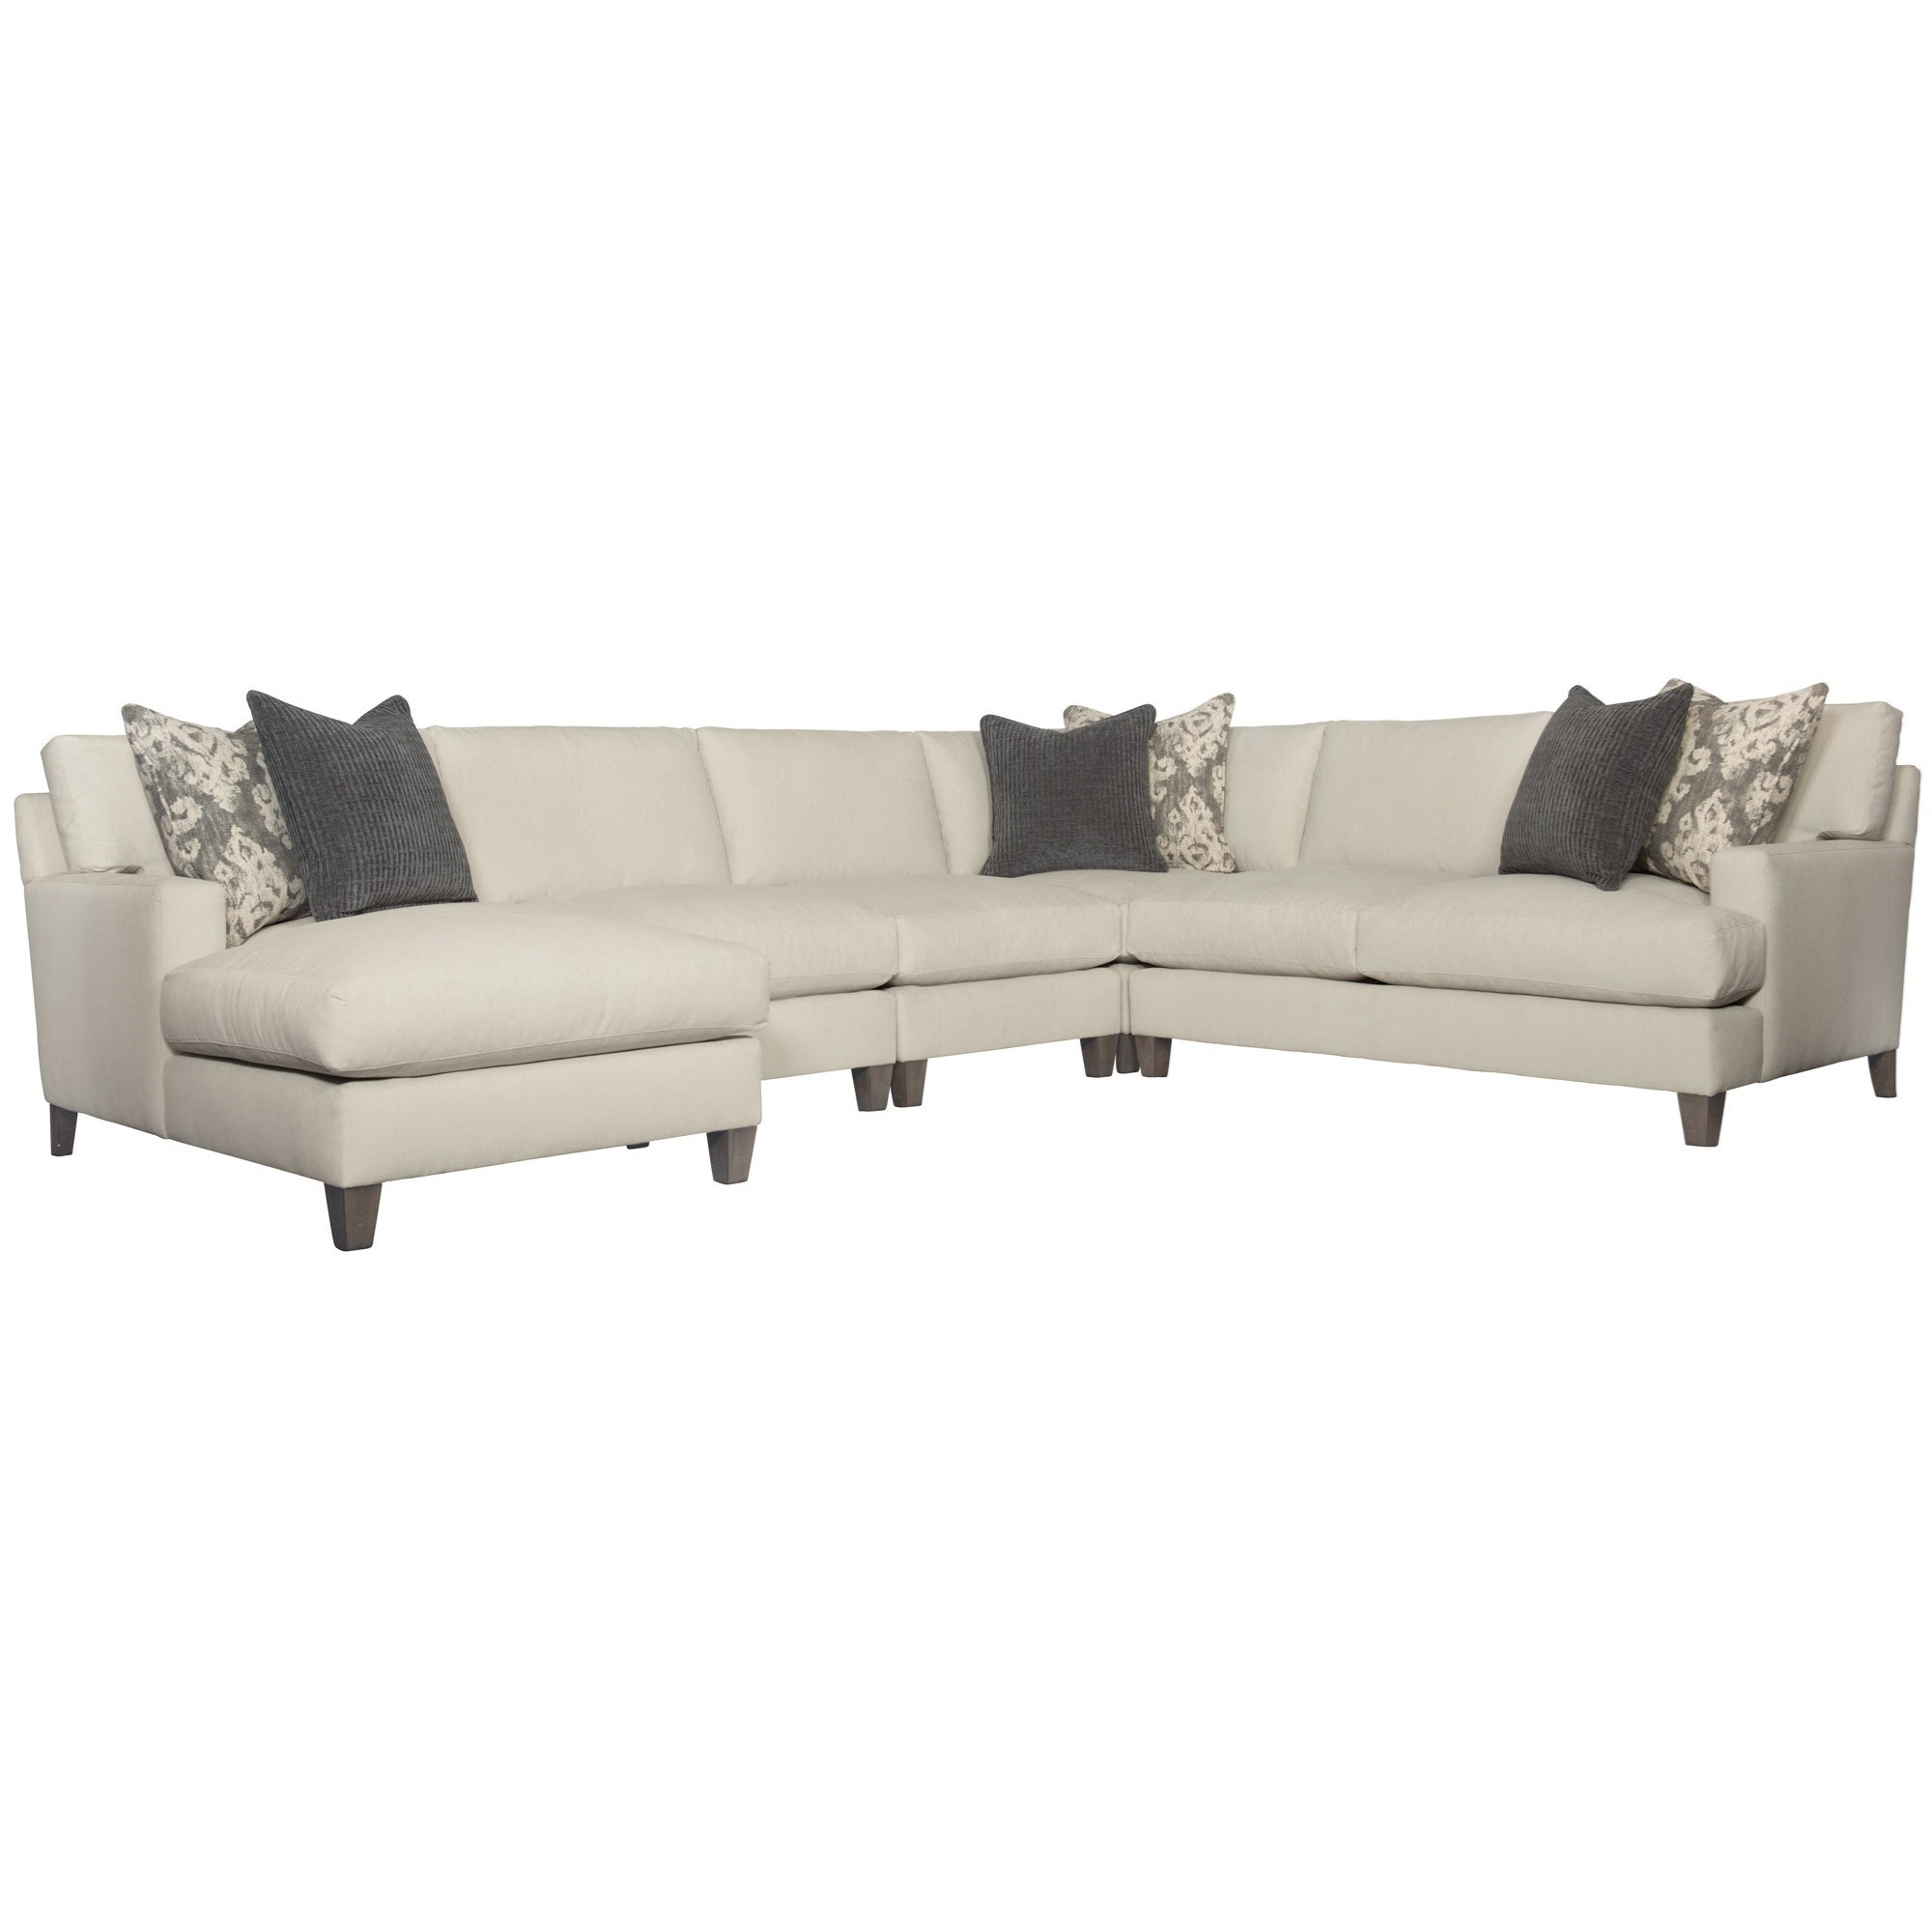 Mila 5-Piece Sectional by Bernhardt at Baer's Furniture